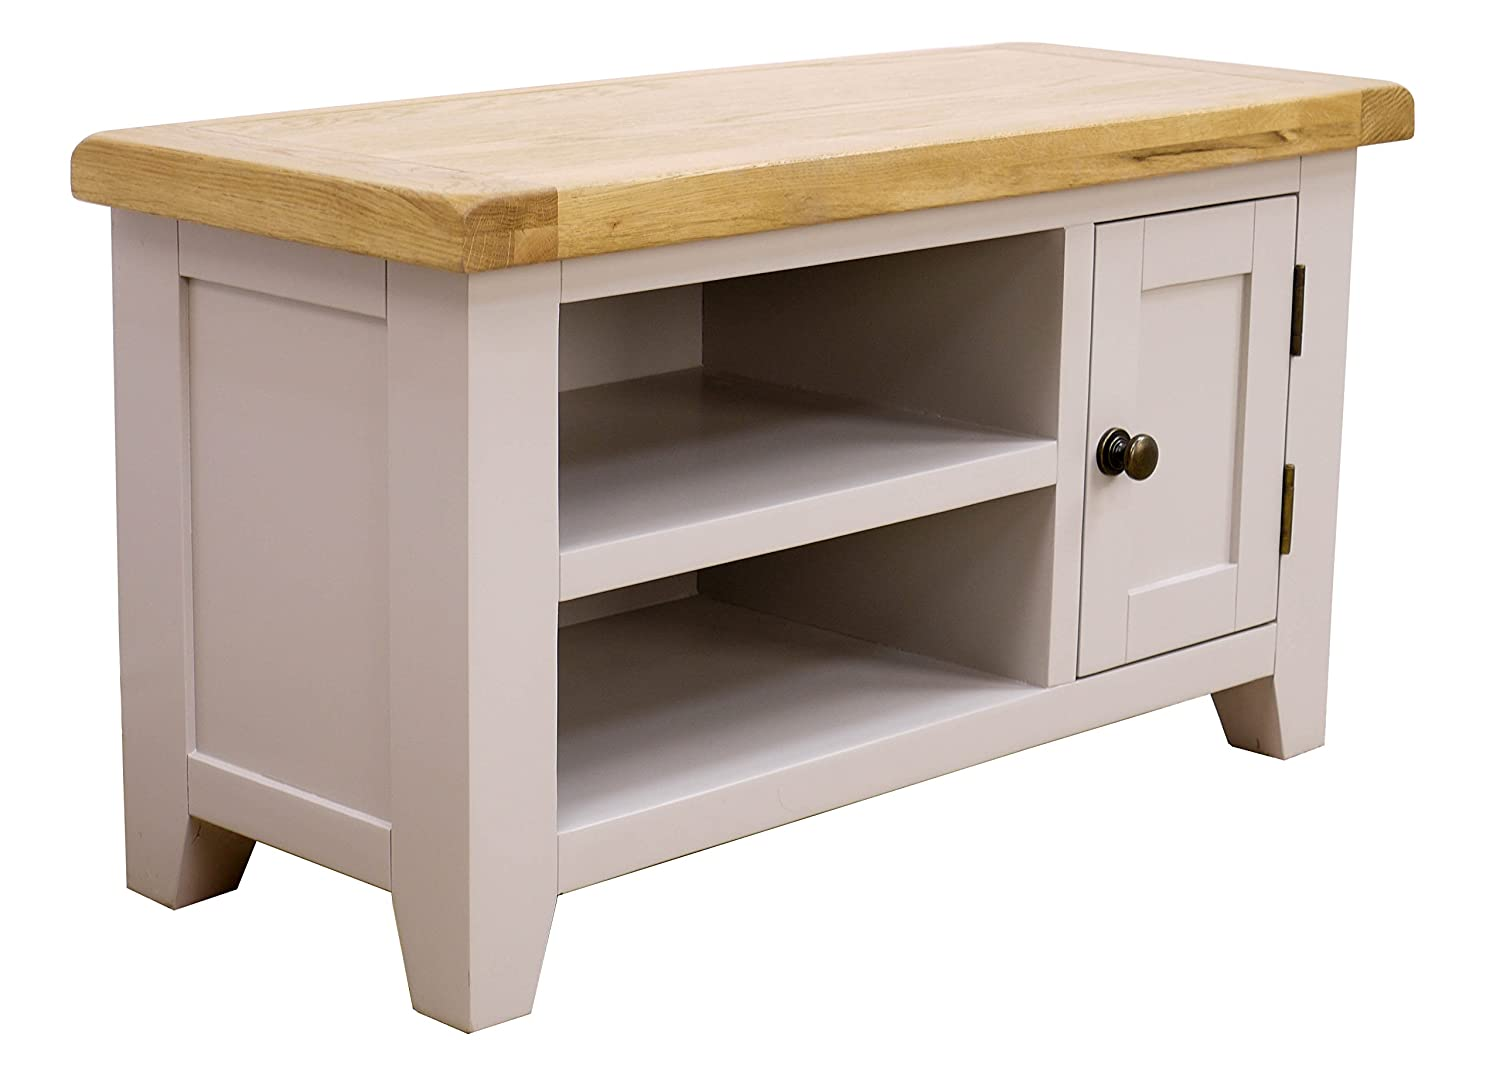 Arklow Painted Oak Dovetail Grey Small TV Stand / Oak TV Cabinet / Living  Room Storage: Amazon.co.uk: Kitchen U0026 Home Part 52